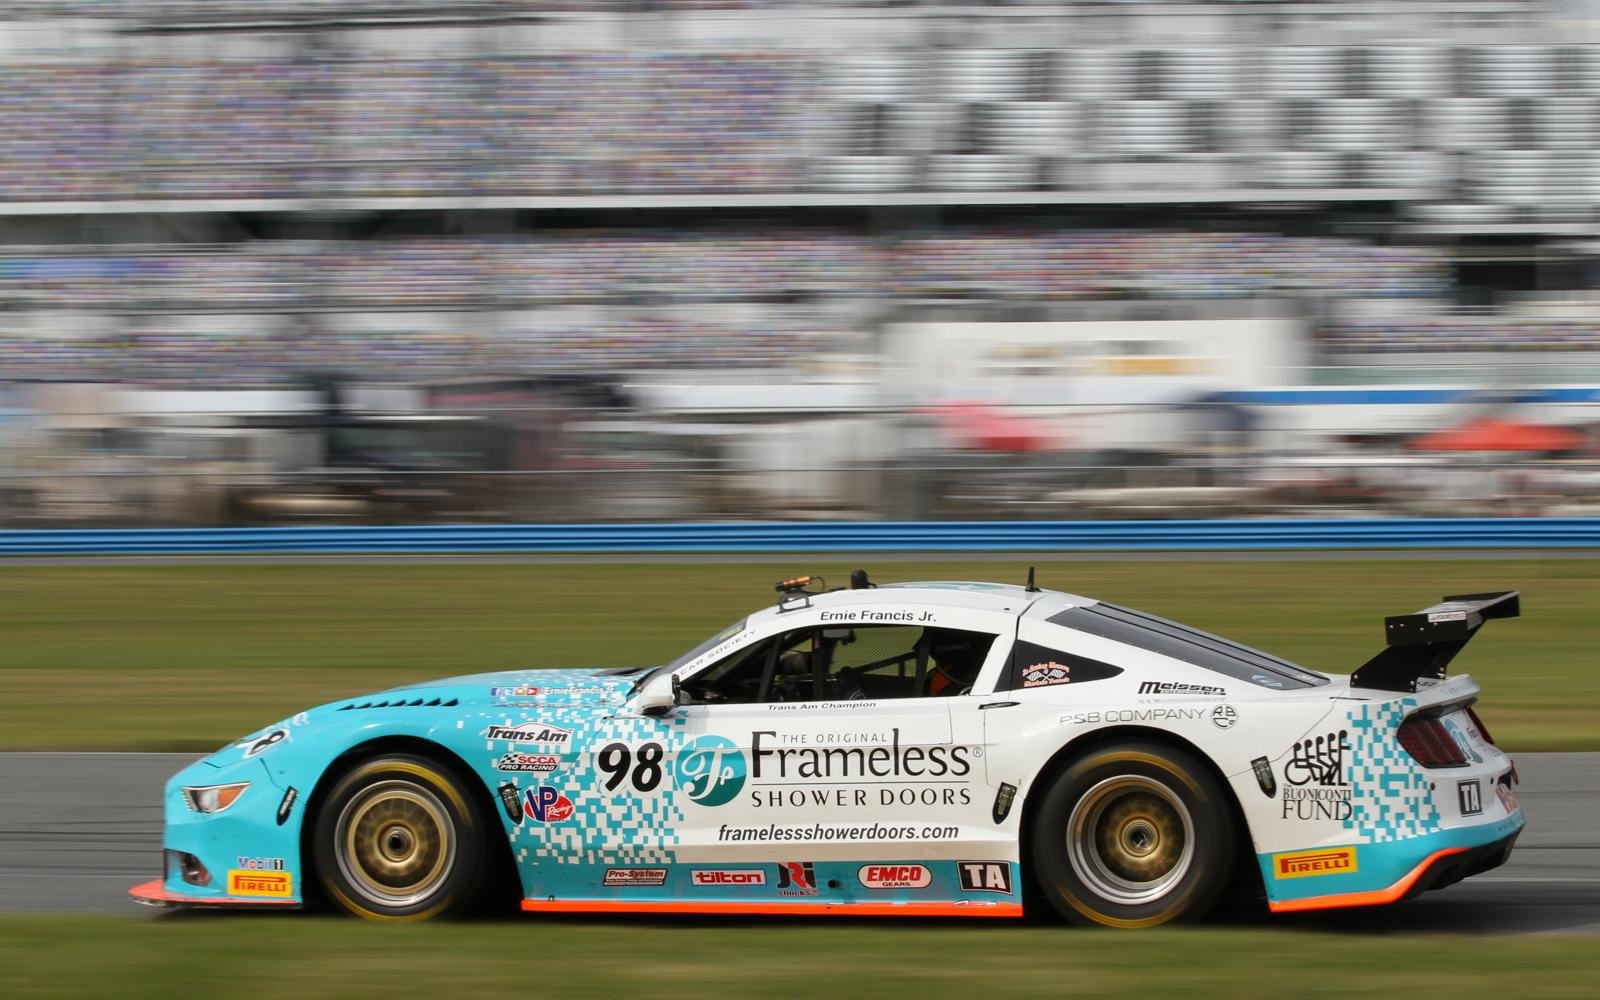 Francis, Jr., and Bilicki lead opening Practice Session at Daytona